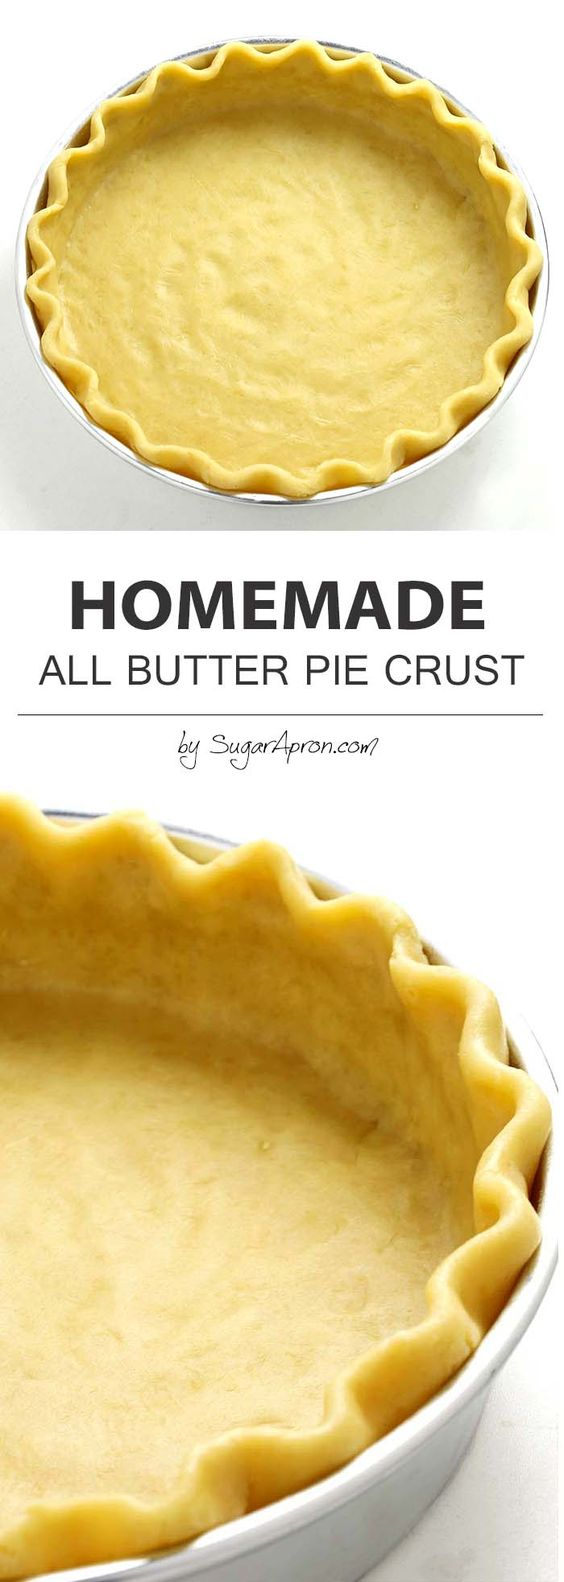 Homemade All Butter Pie Crust